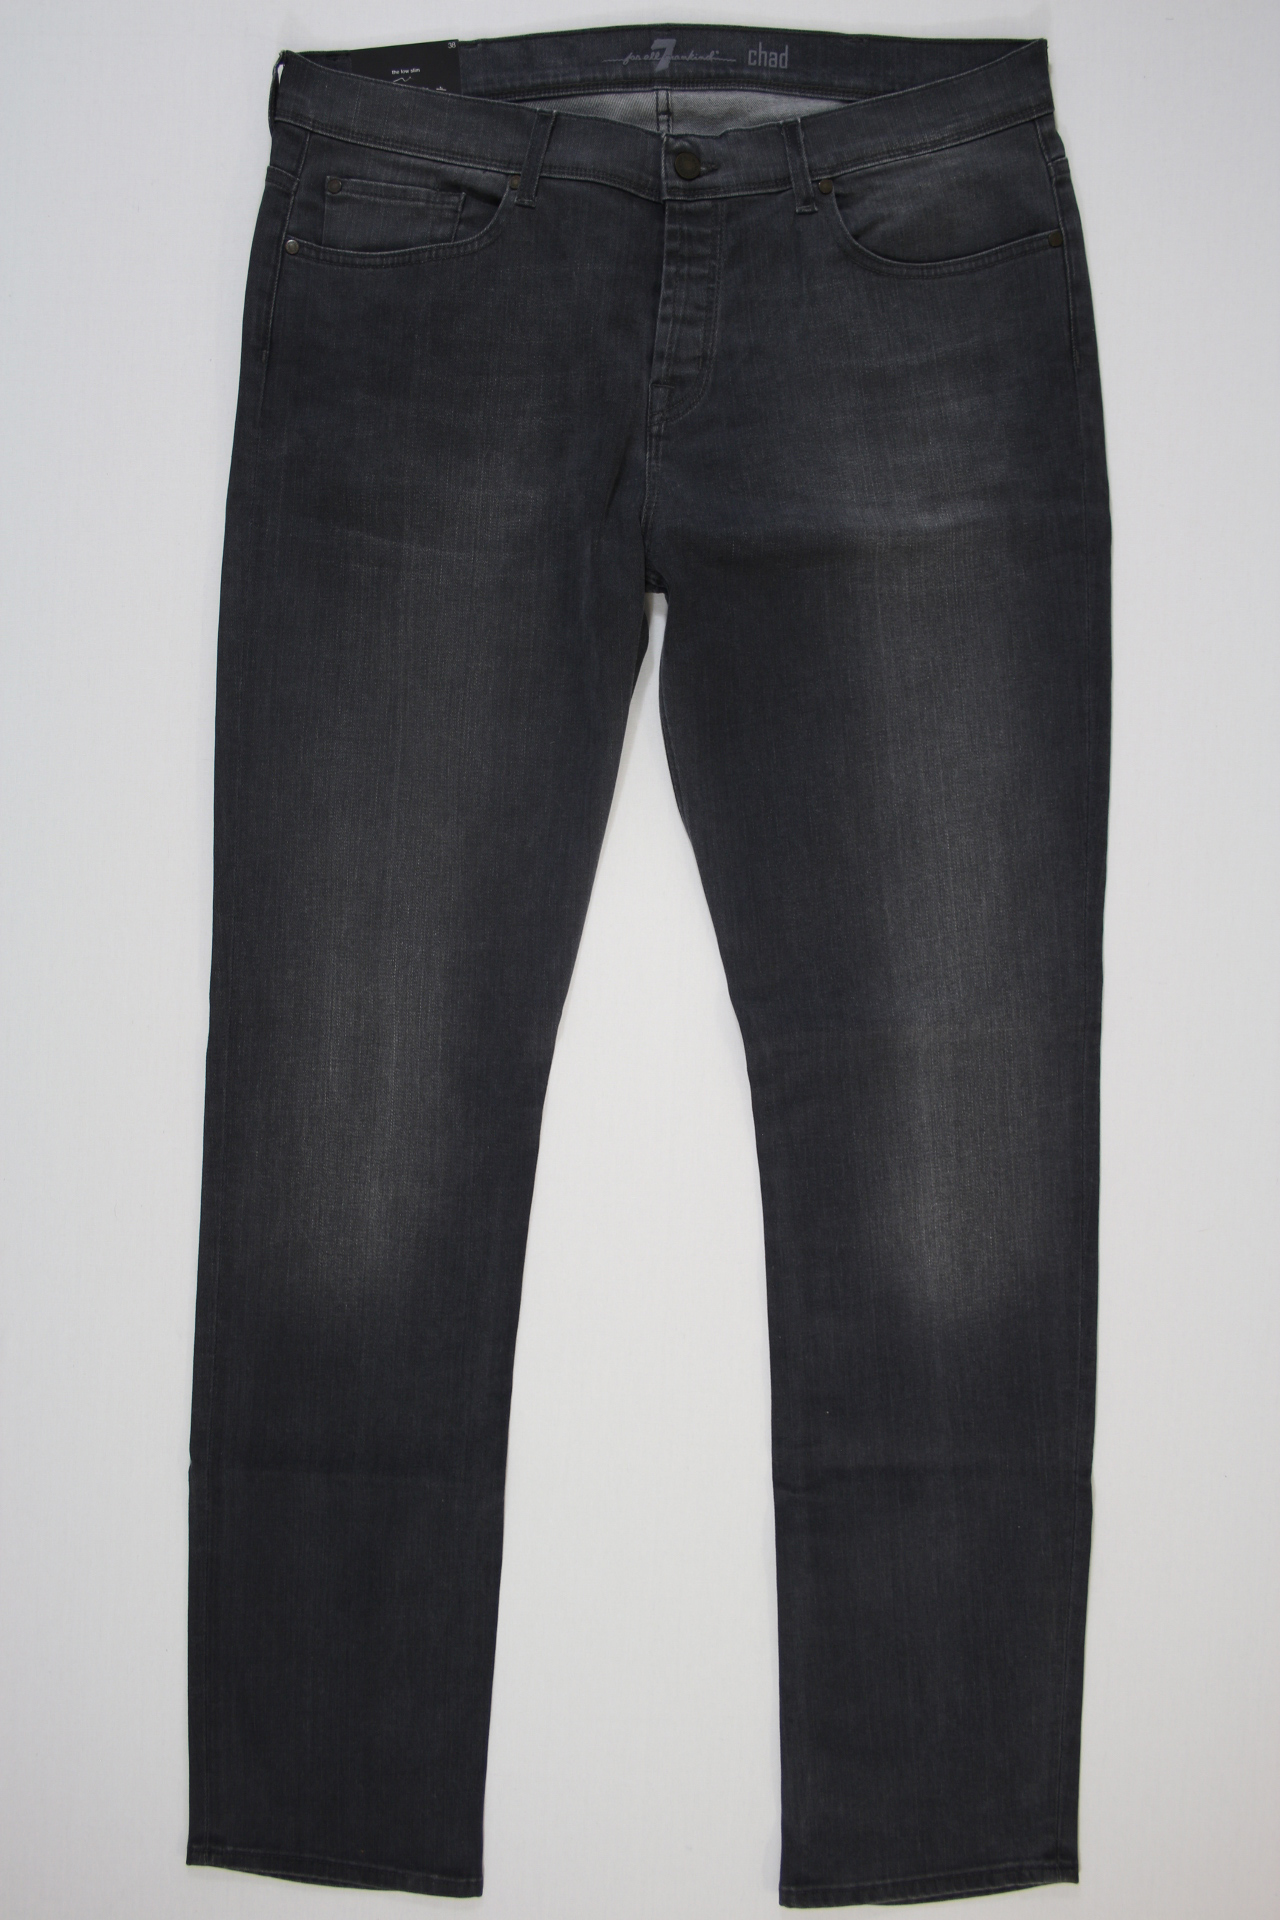 7 For All Mankind Chad Low Slim grijs